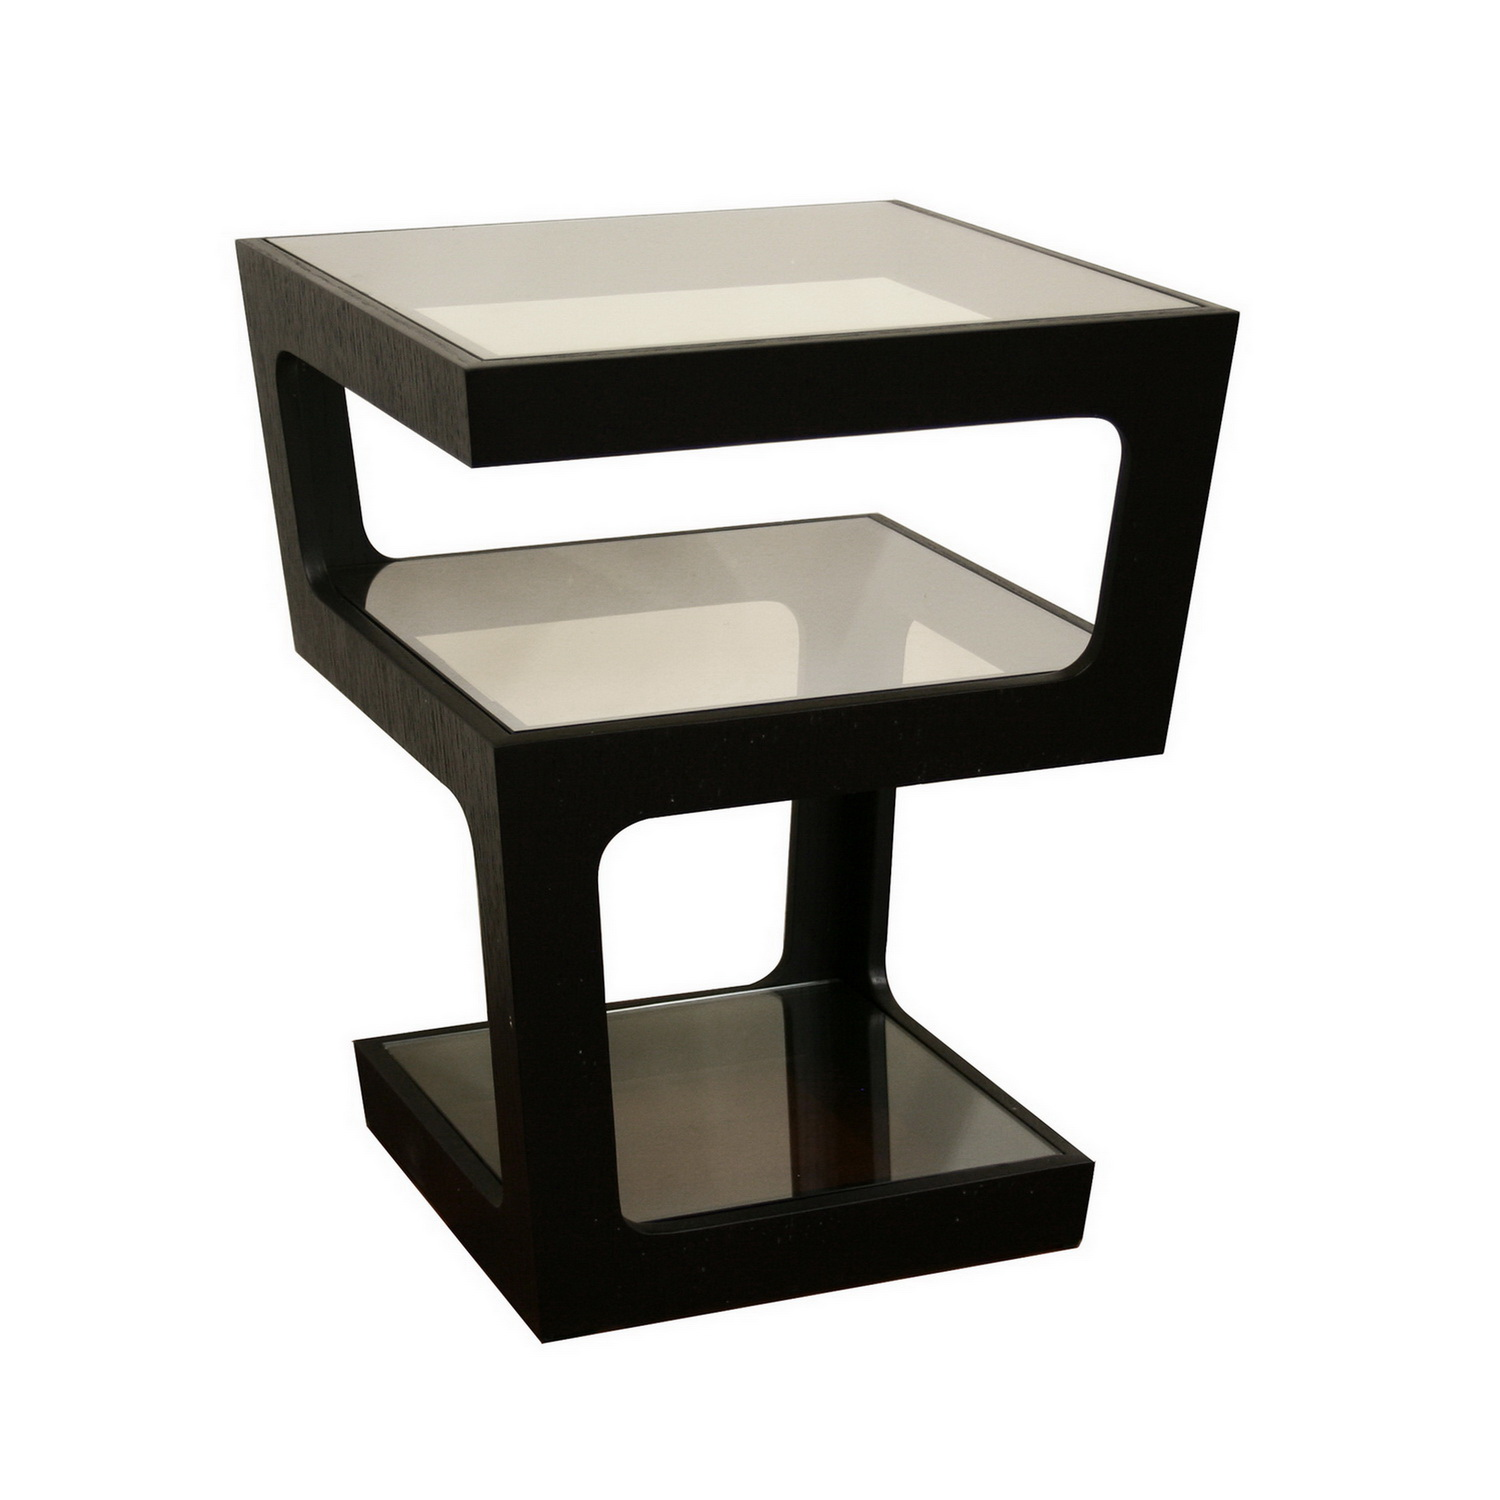 Furniture living room furniture end table modern for Small tall end table